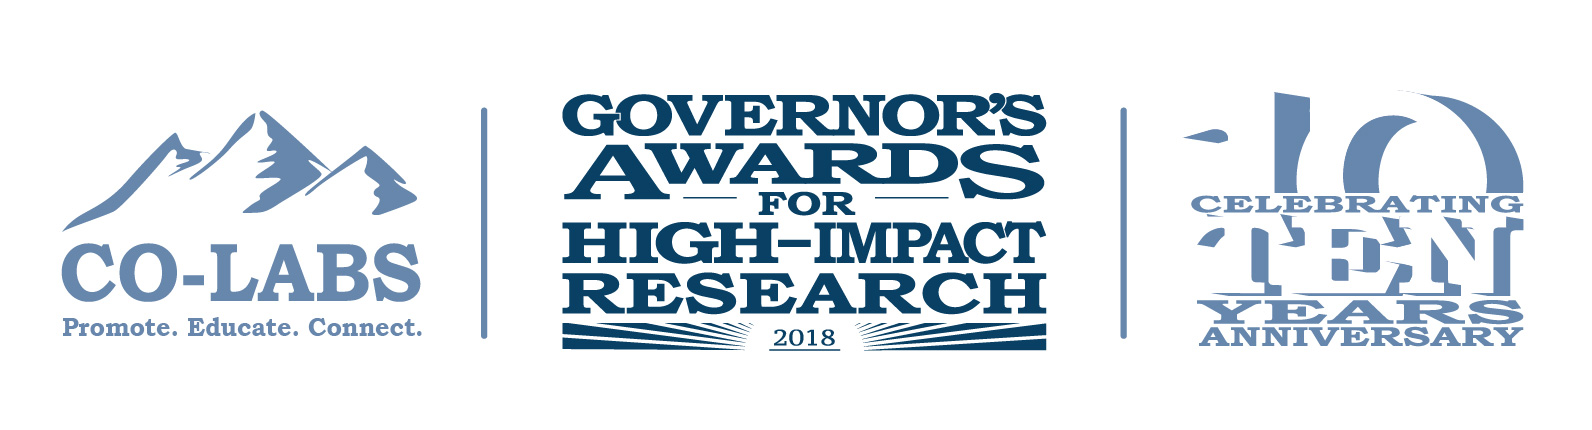 2018 CO-LABS Governor's Awards for High-Impact Research